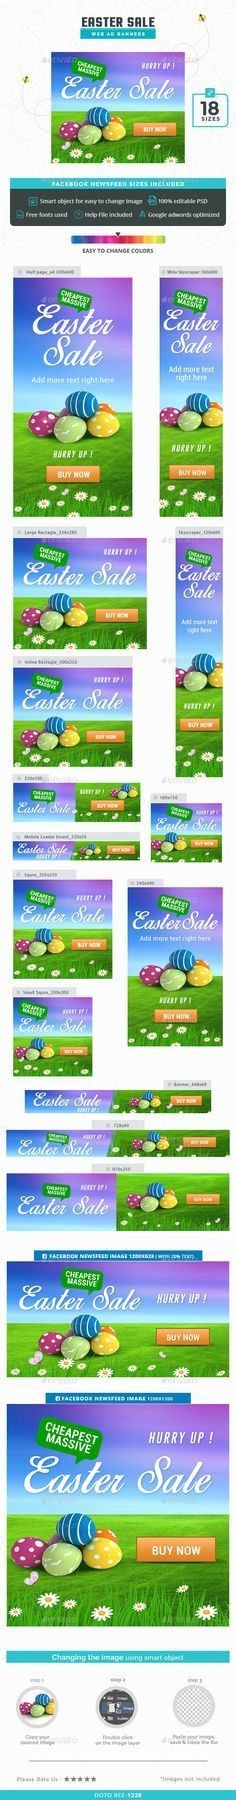 Facebook Ads - 40 Designs - 80 Banners | Banner template, Banners ...